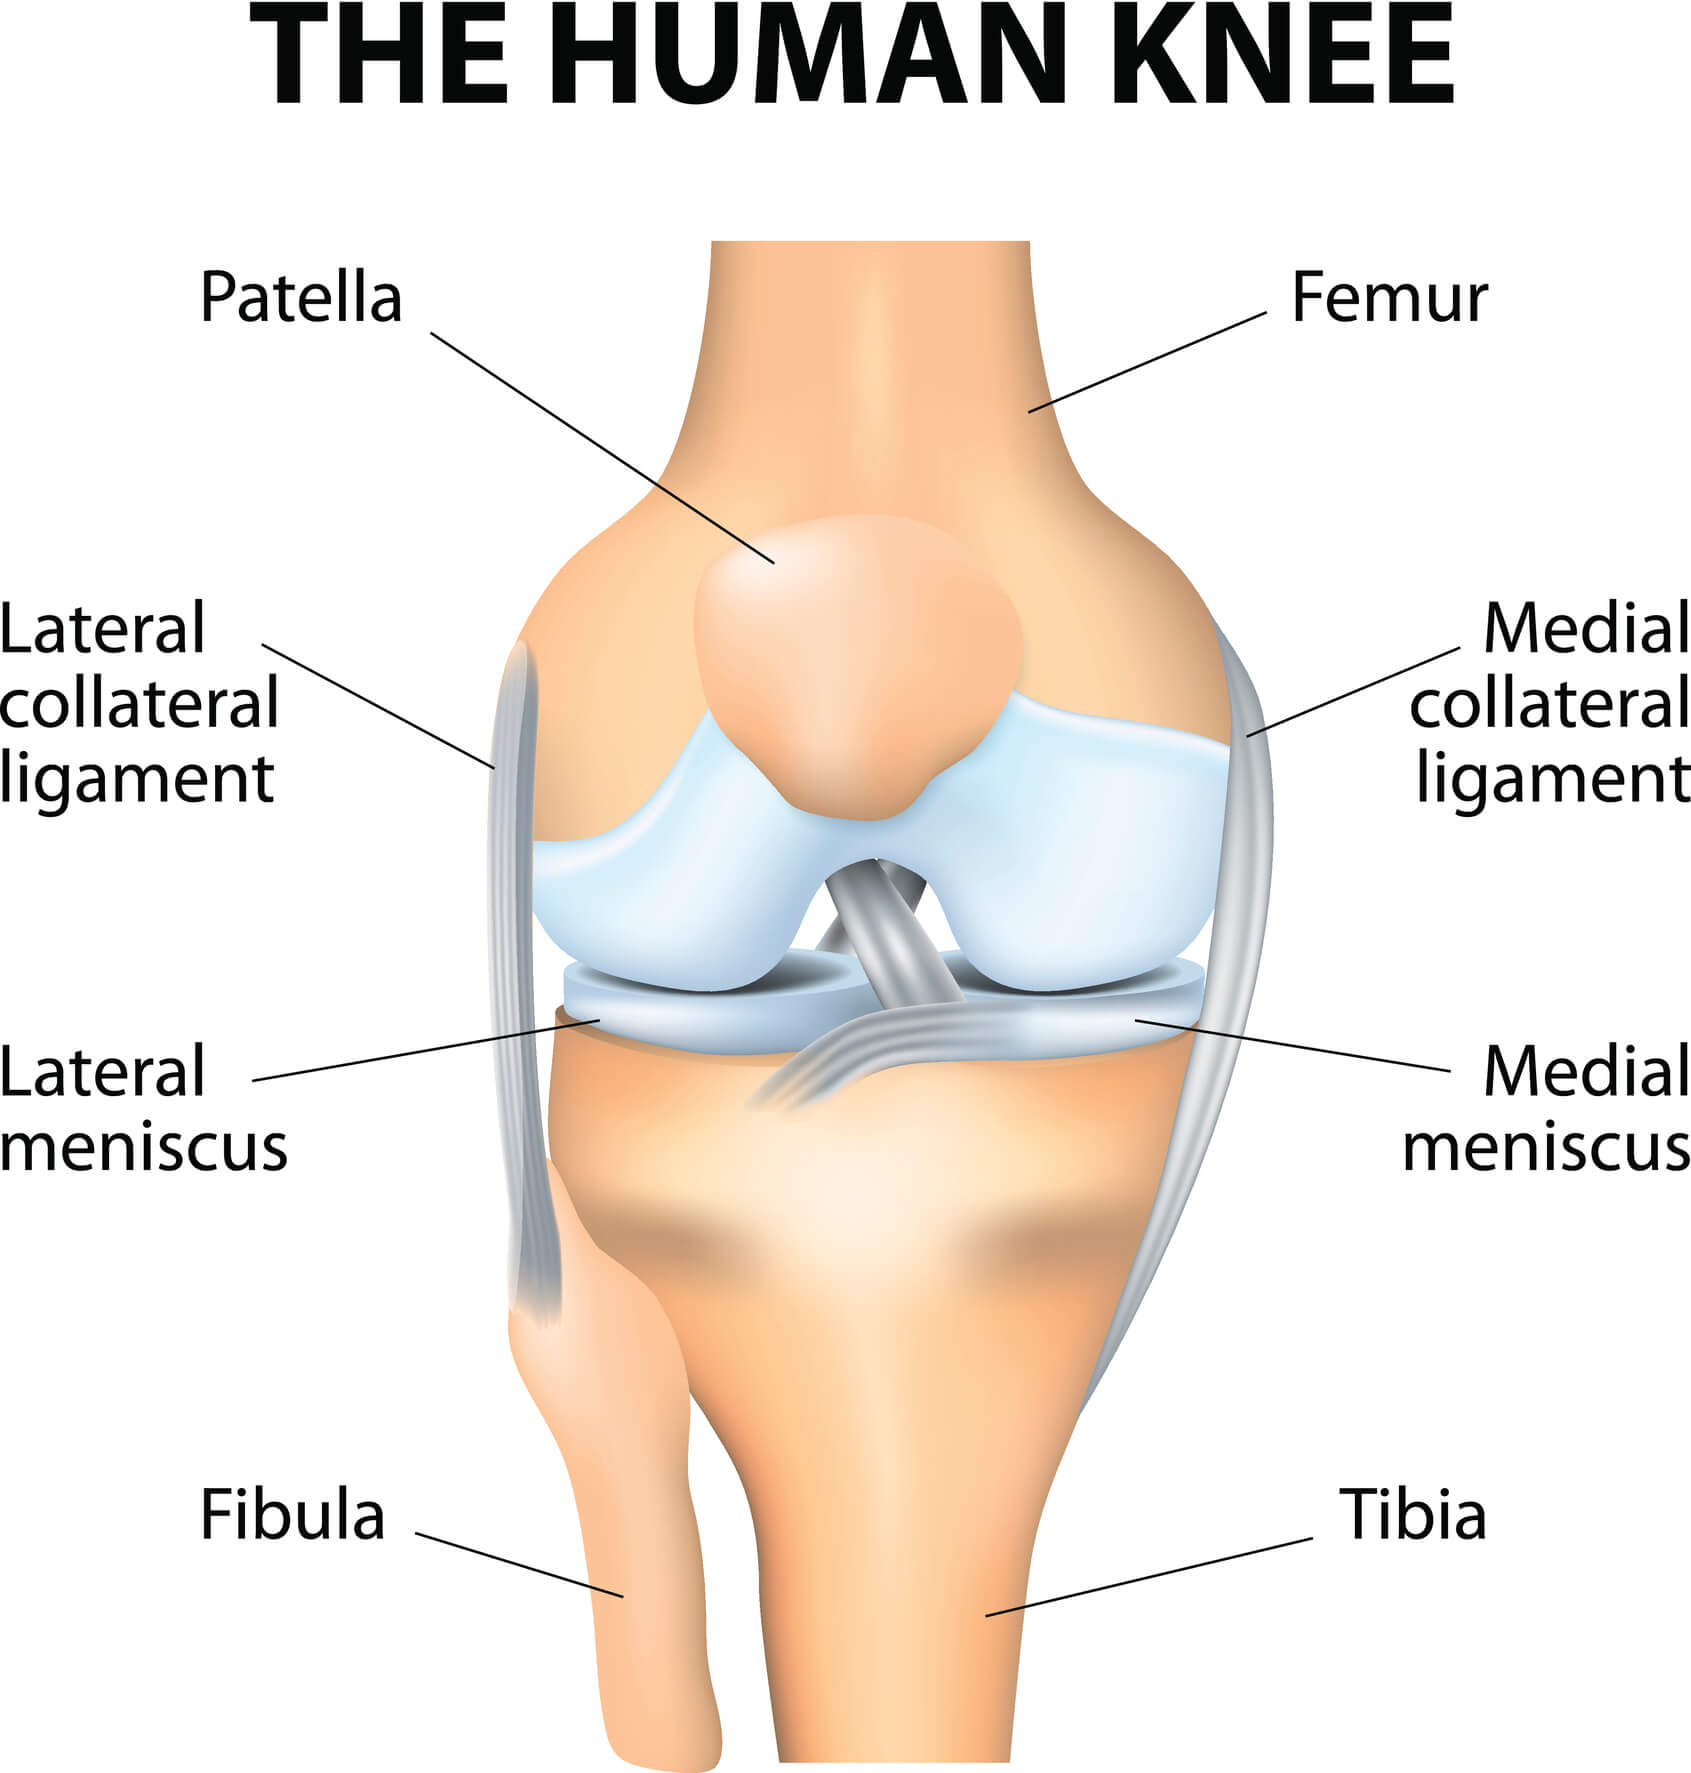 Image of the knee and both medial and lateral menisci